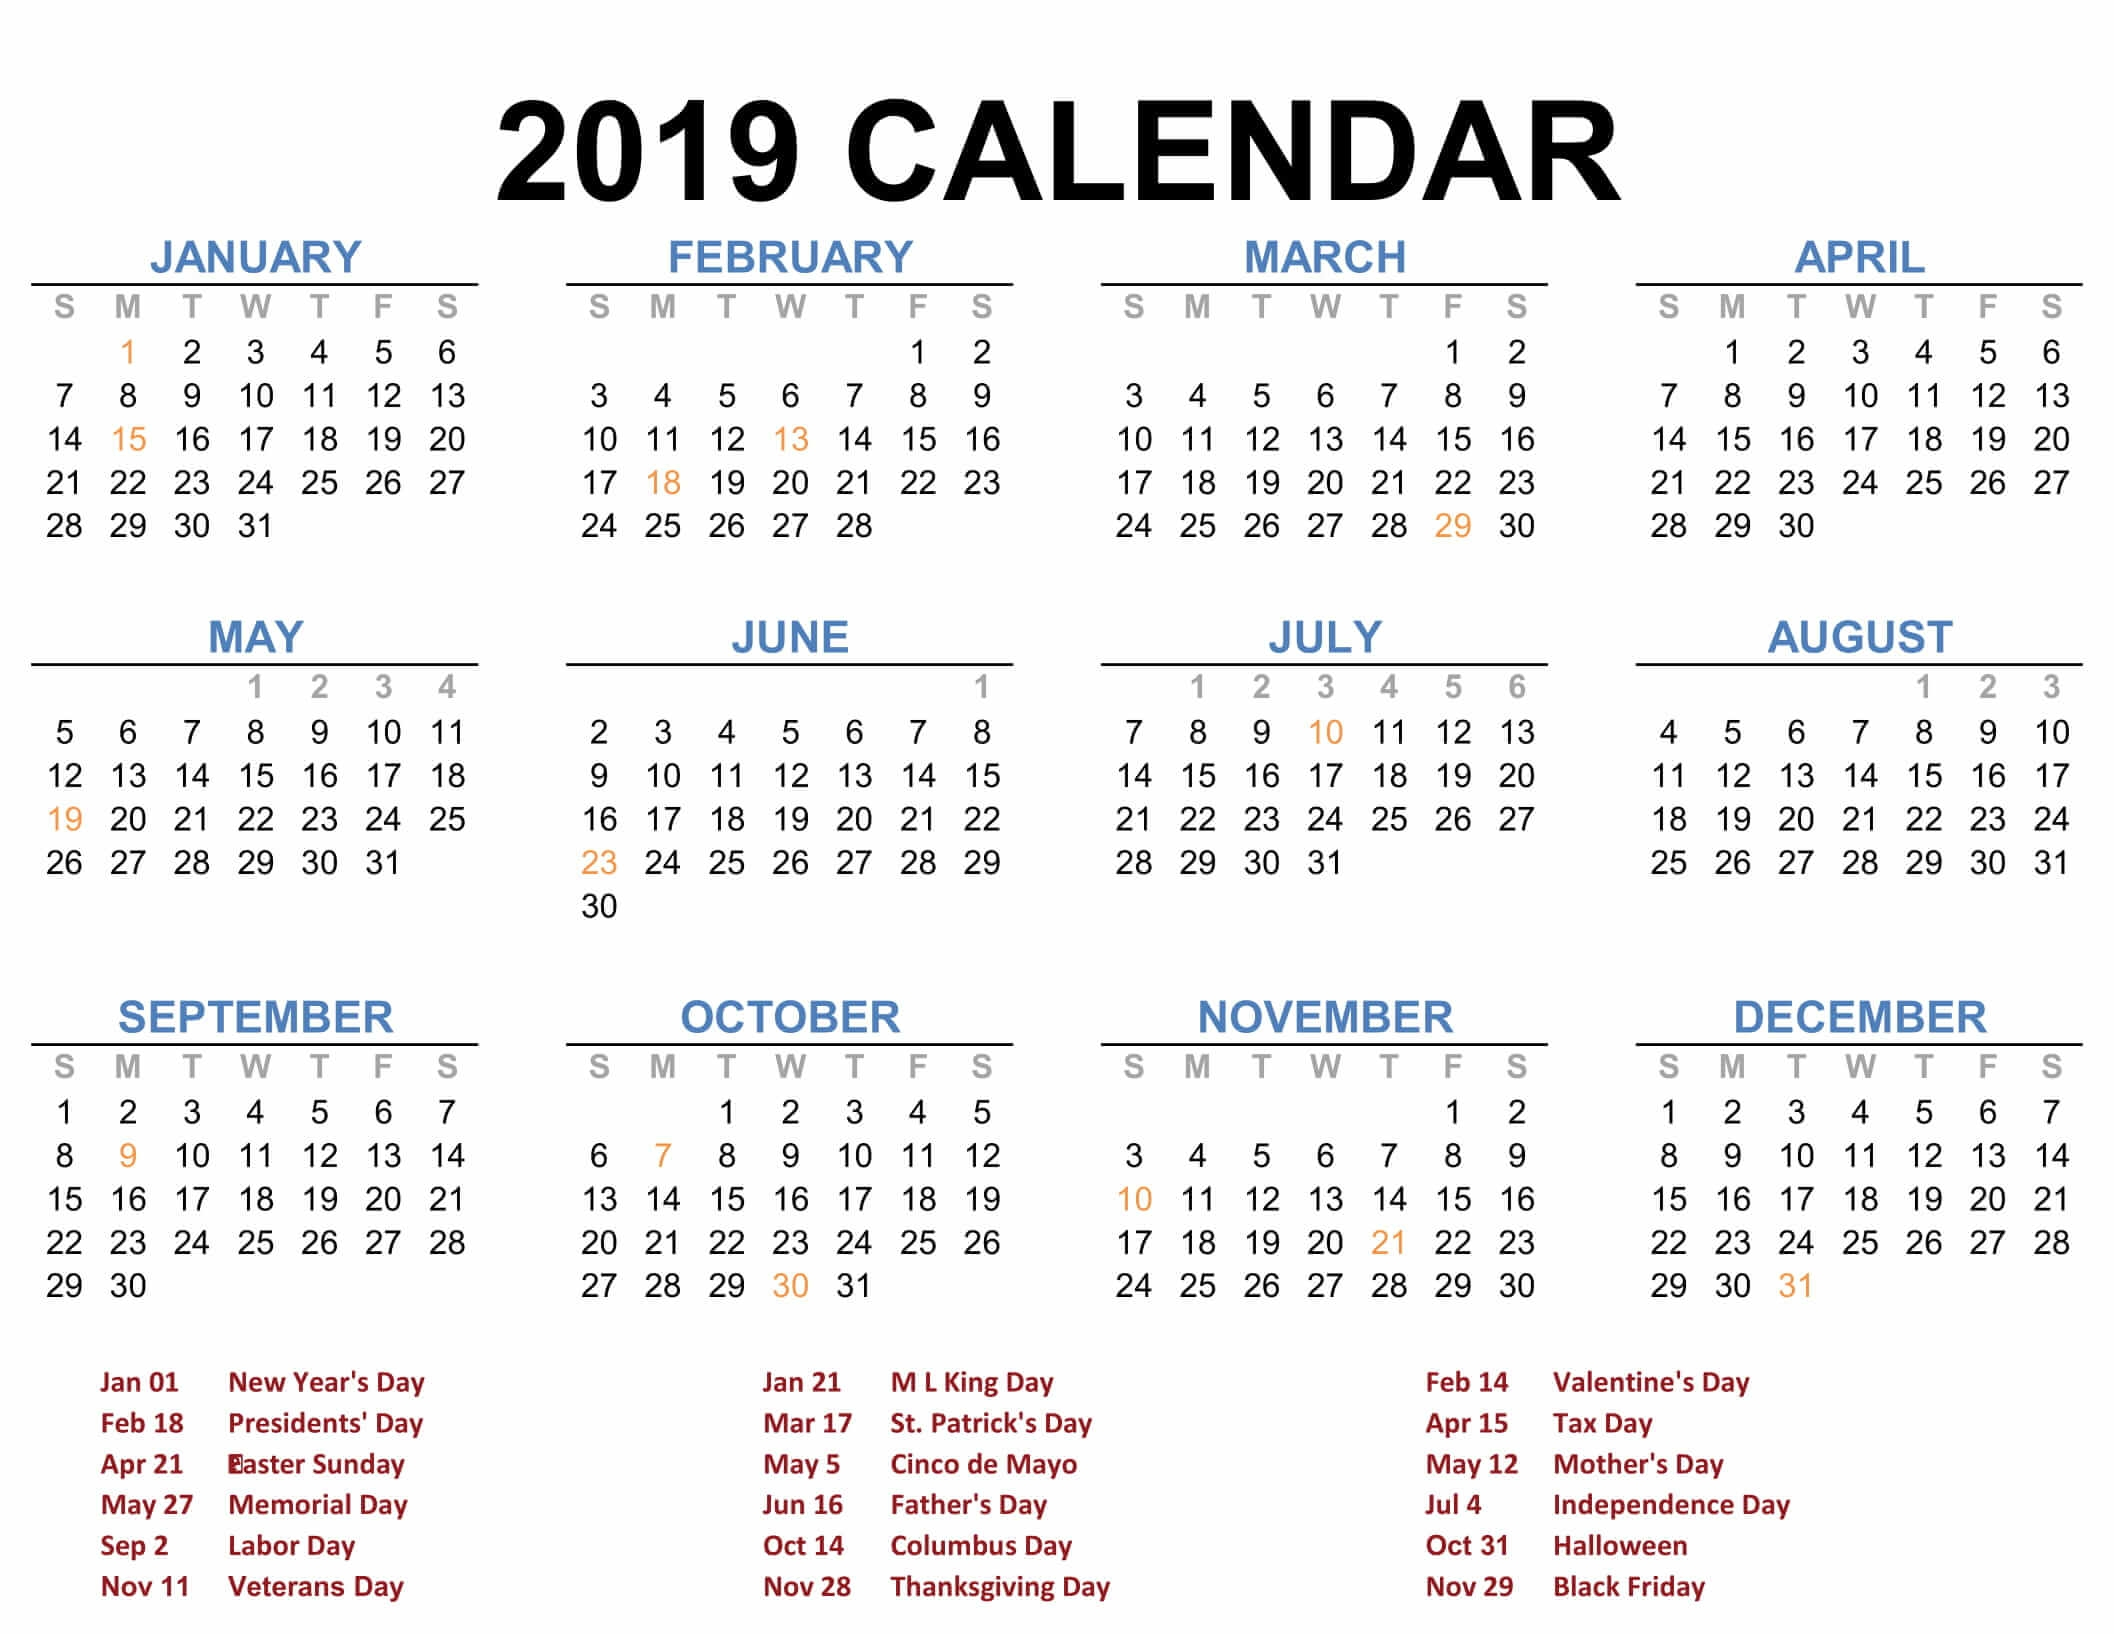 download free blank printable calendar pages 2019 templates::Download 2019 Printable Calendar